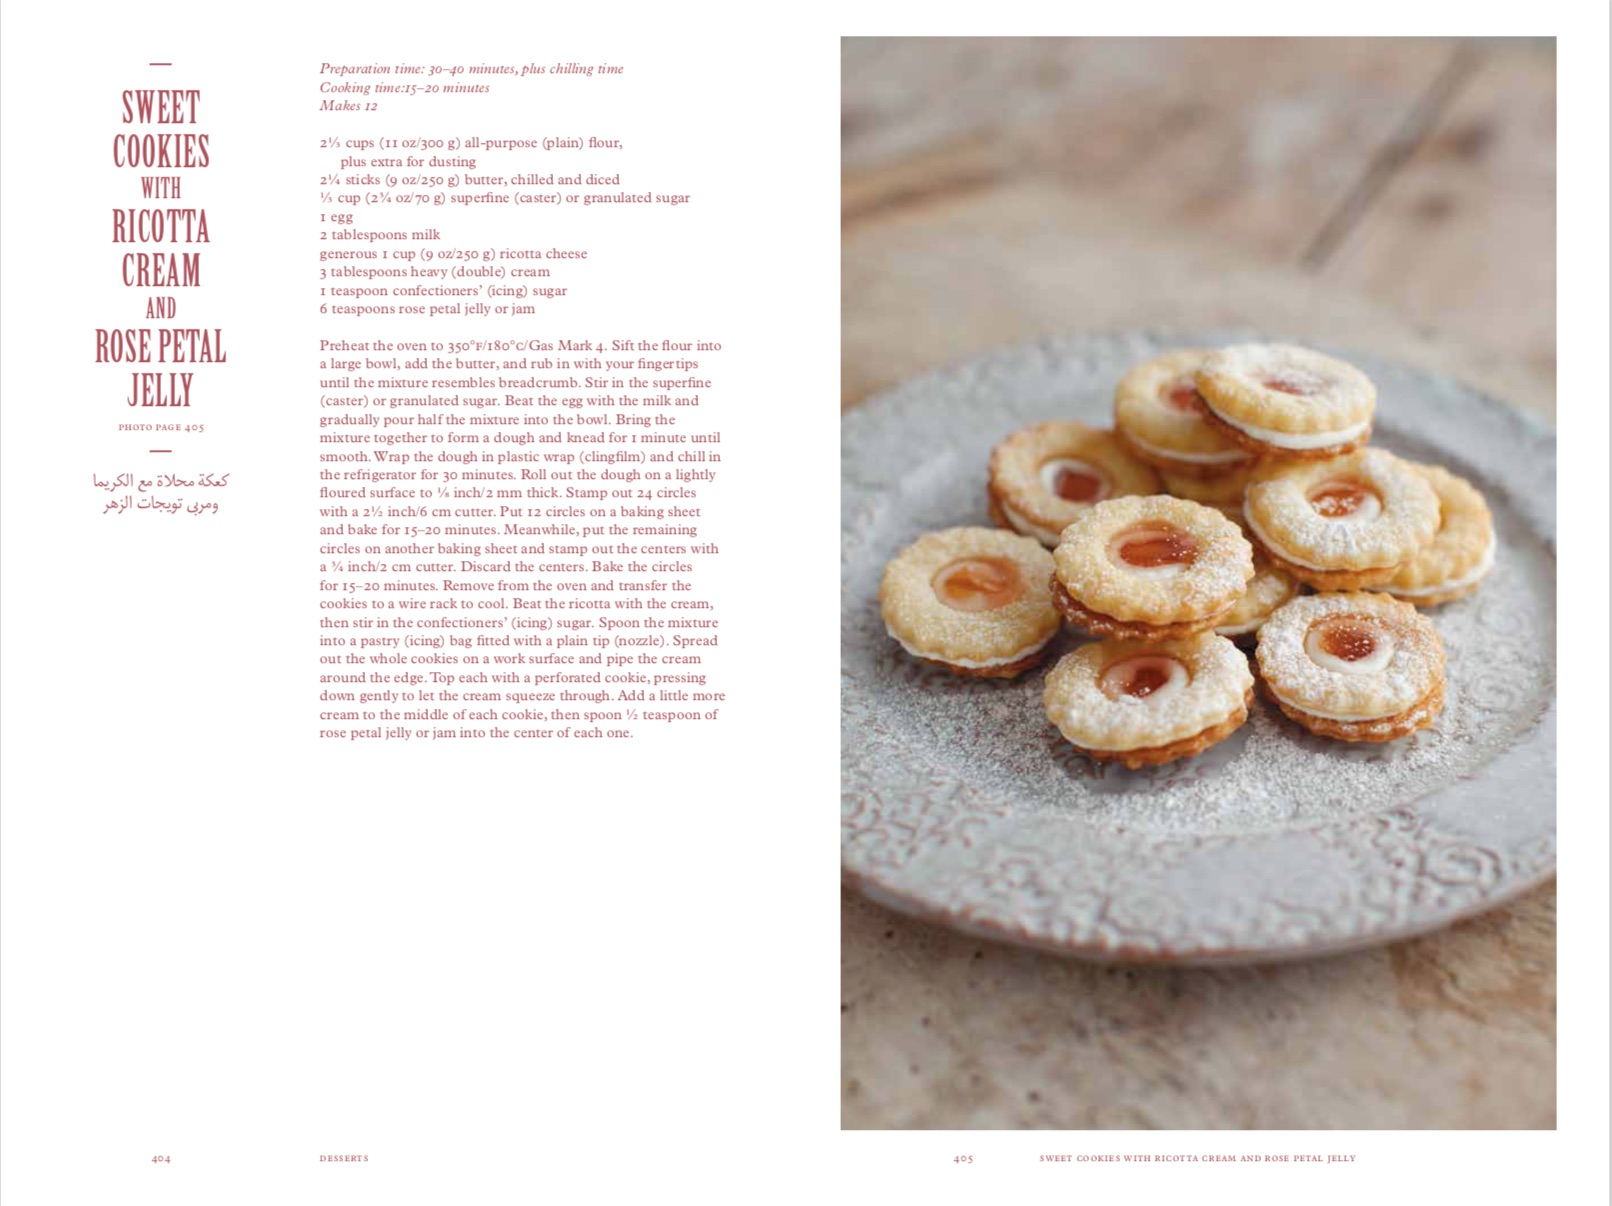 By Salma Hage from The Lebanese Cookbook copyright Phaidon 2019